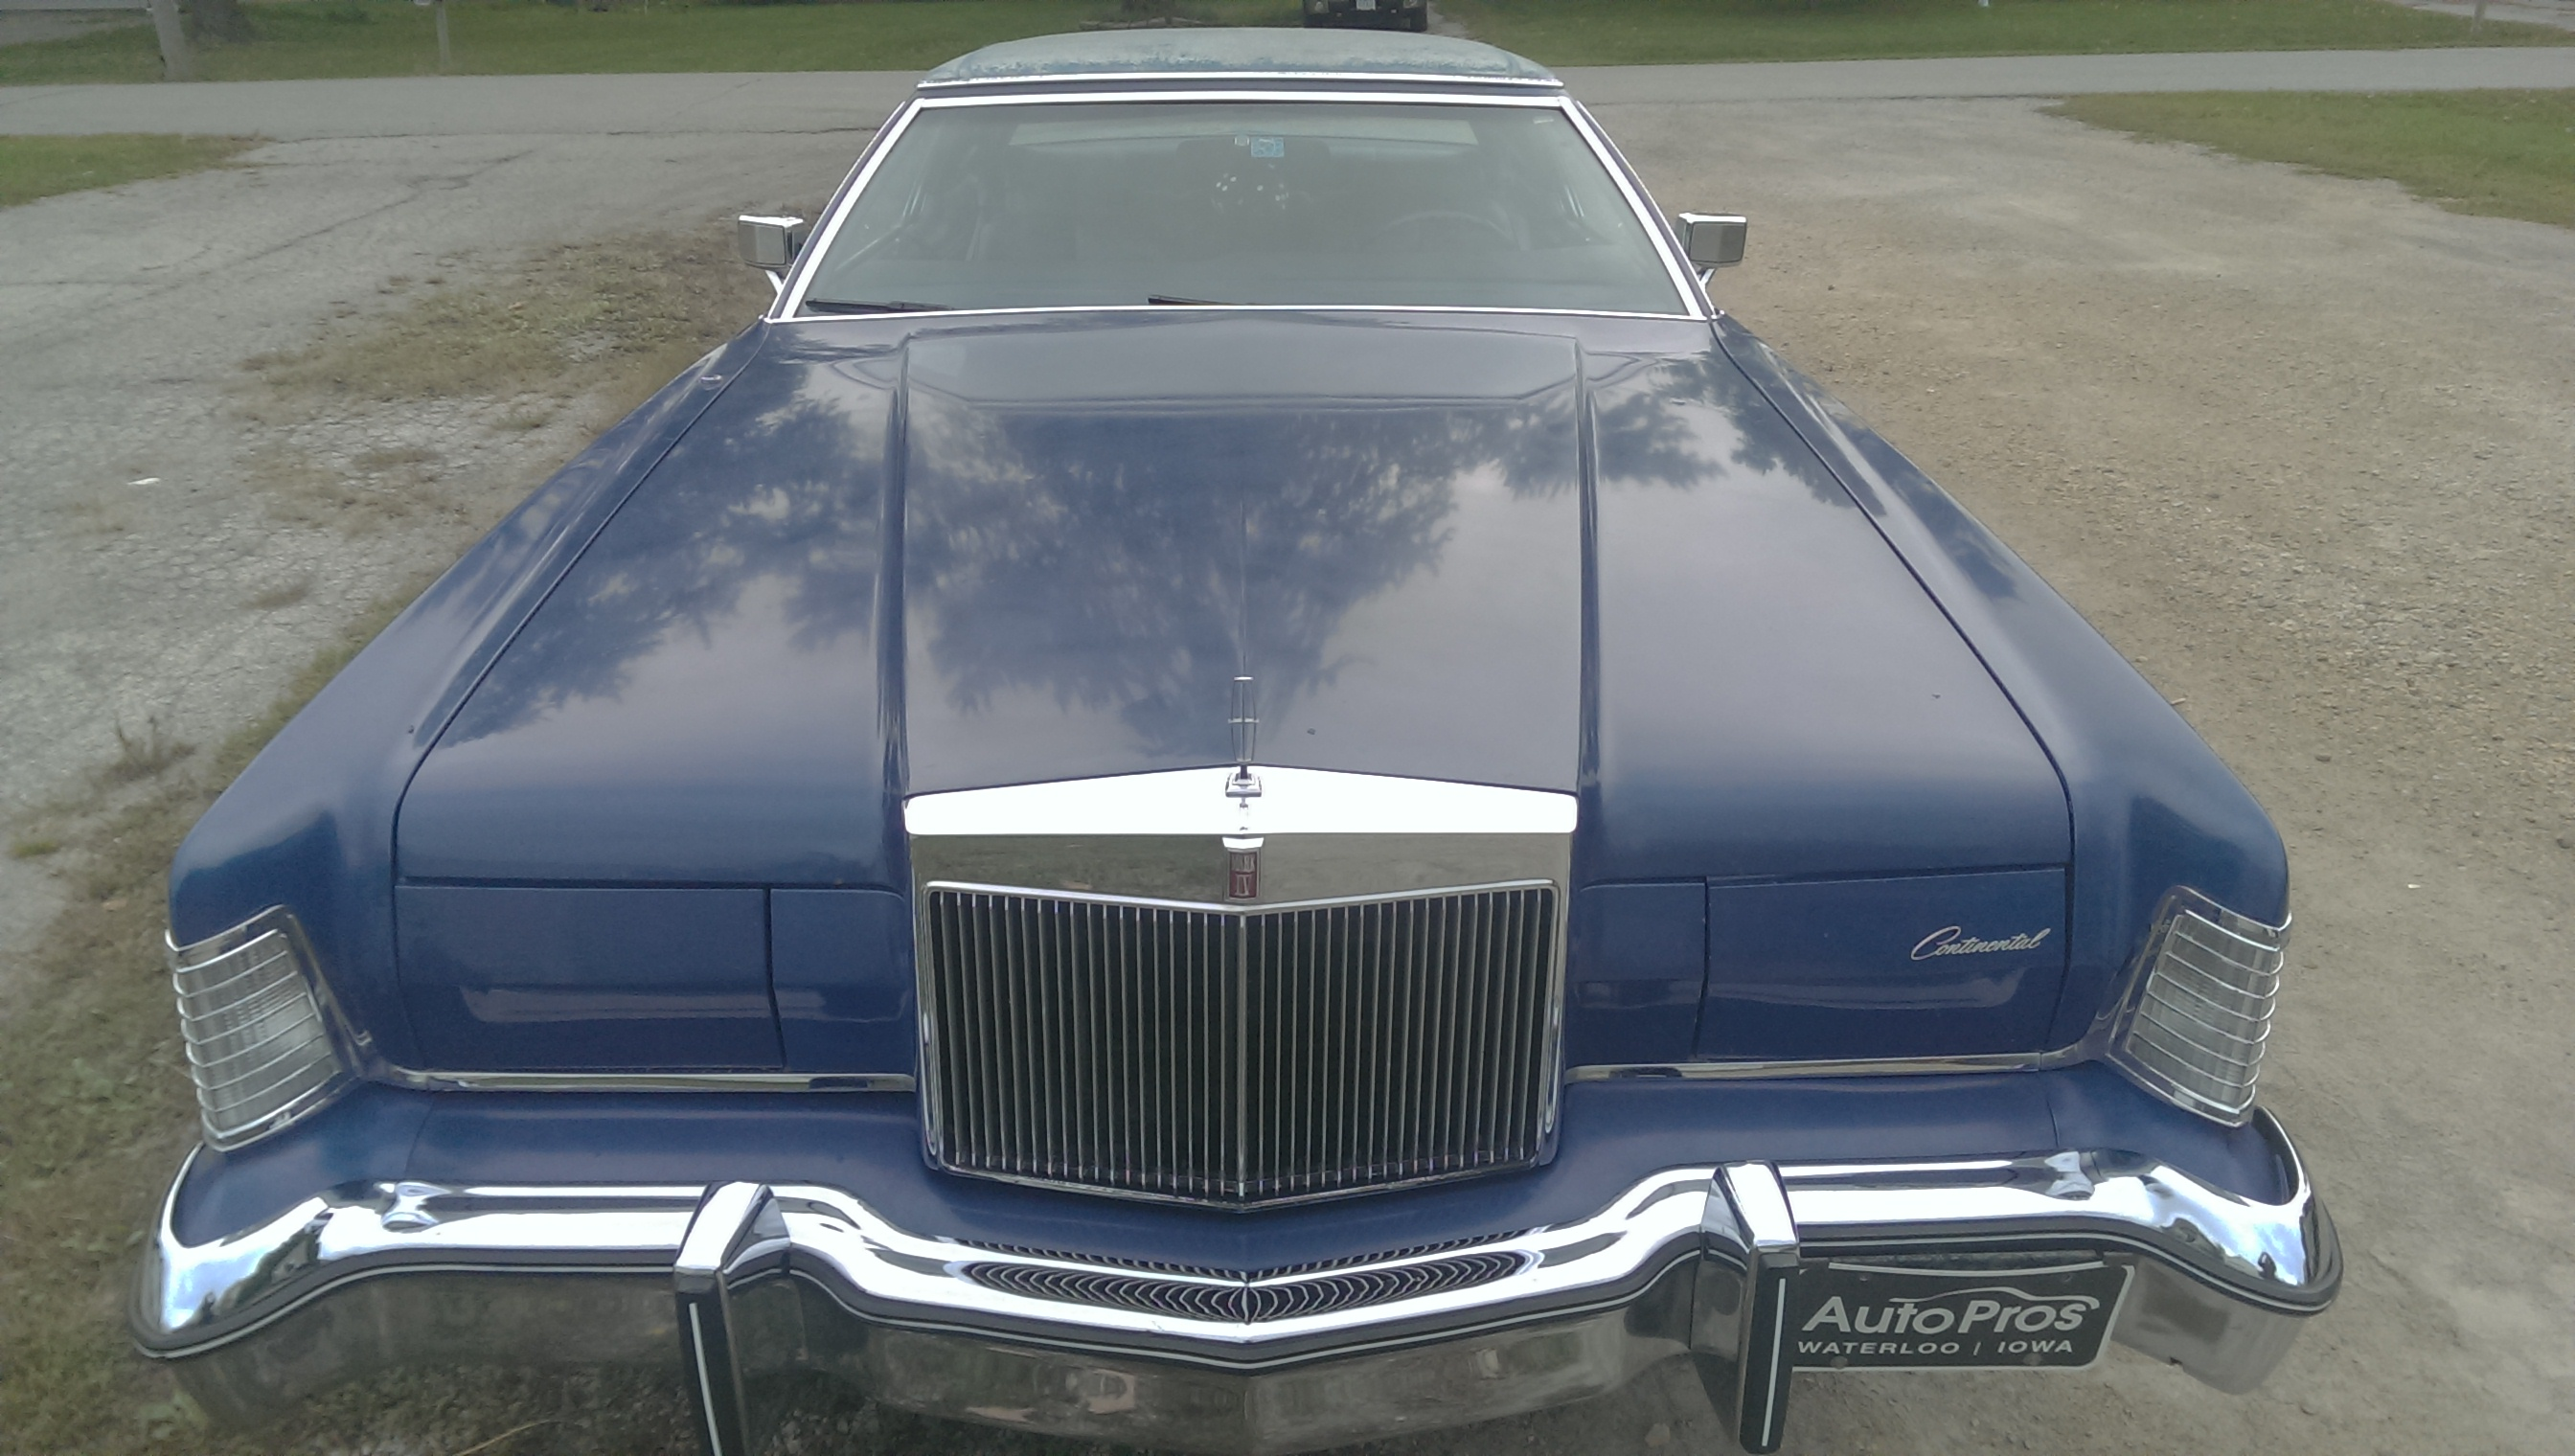 This is my 75 Lincoln Continental Mark IV (4) This actually happens to be my first car im only 15. I love this car its got the big block 460 and it just moves even when weighing 5200 pounds! - 19087069